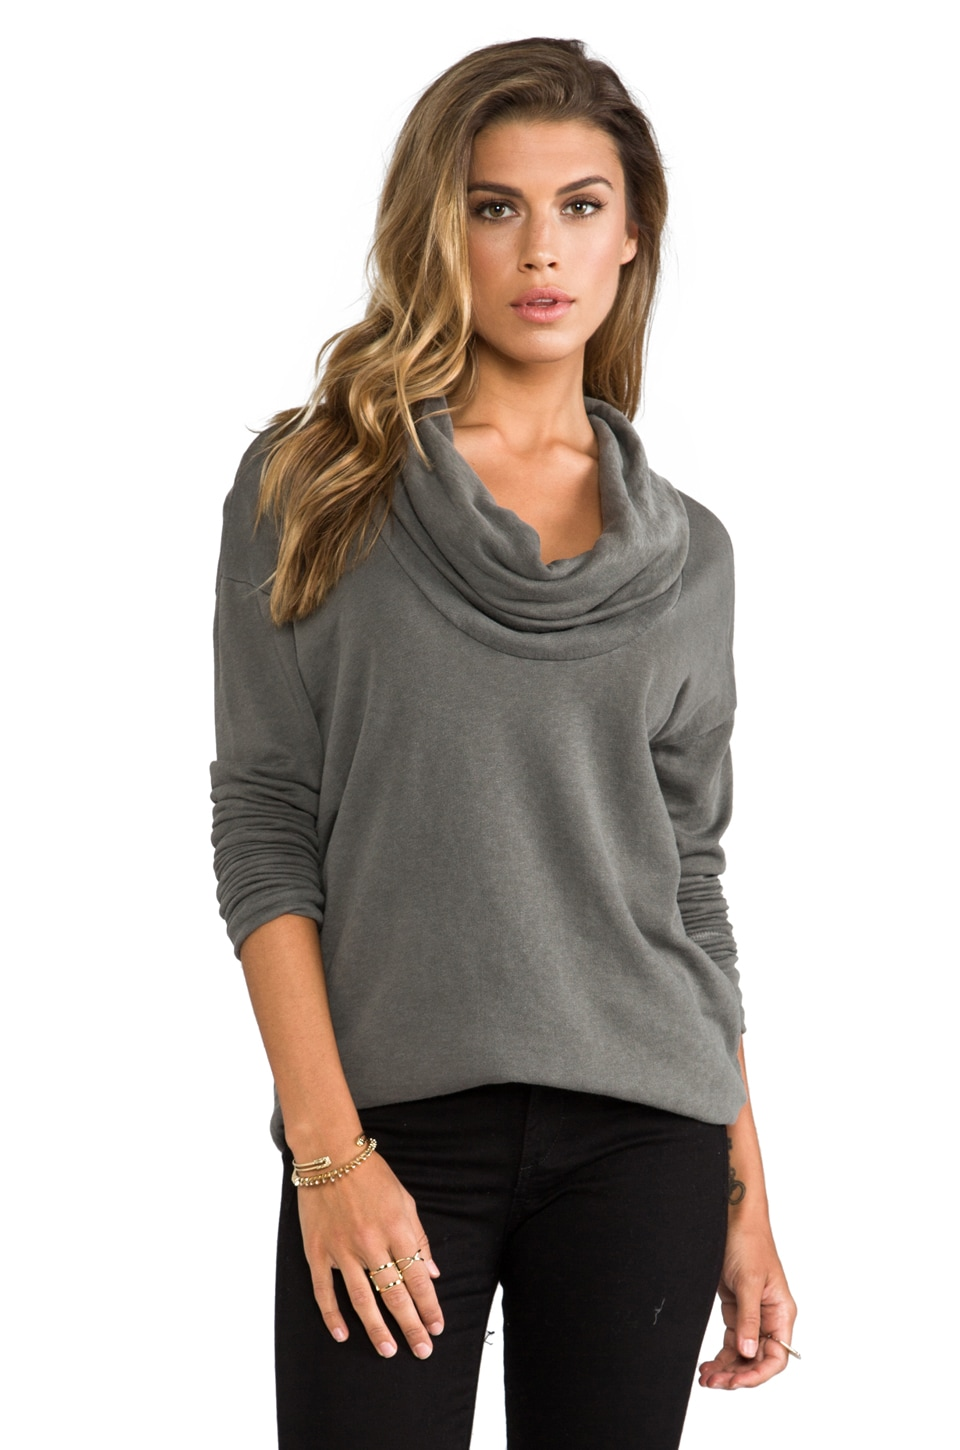 James Perse Oversize Cowl Tunic in Spruce